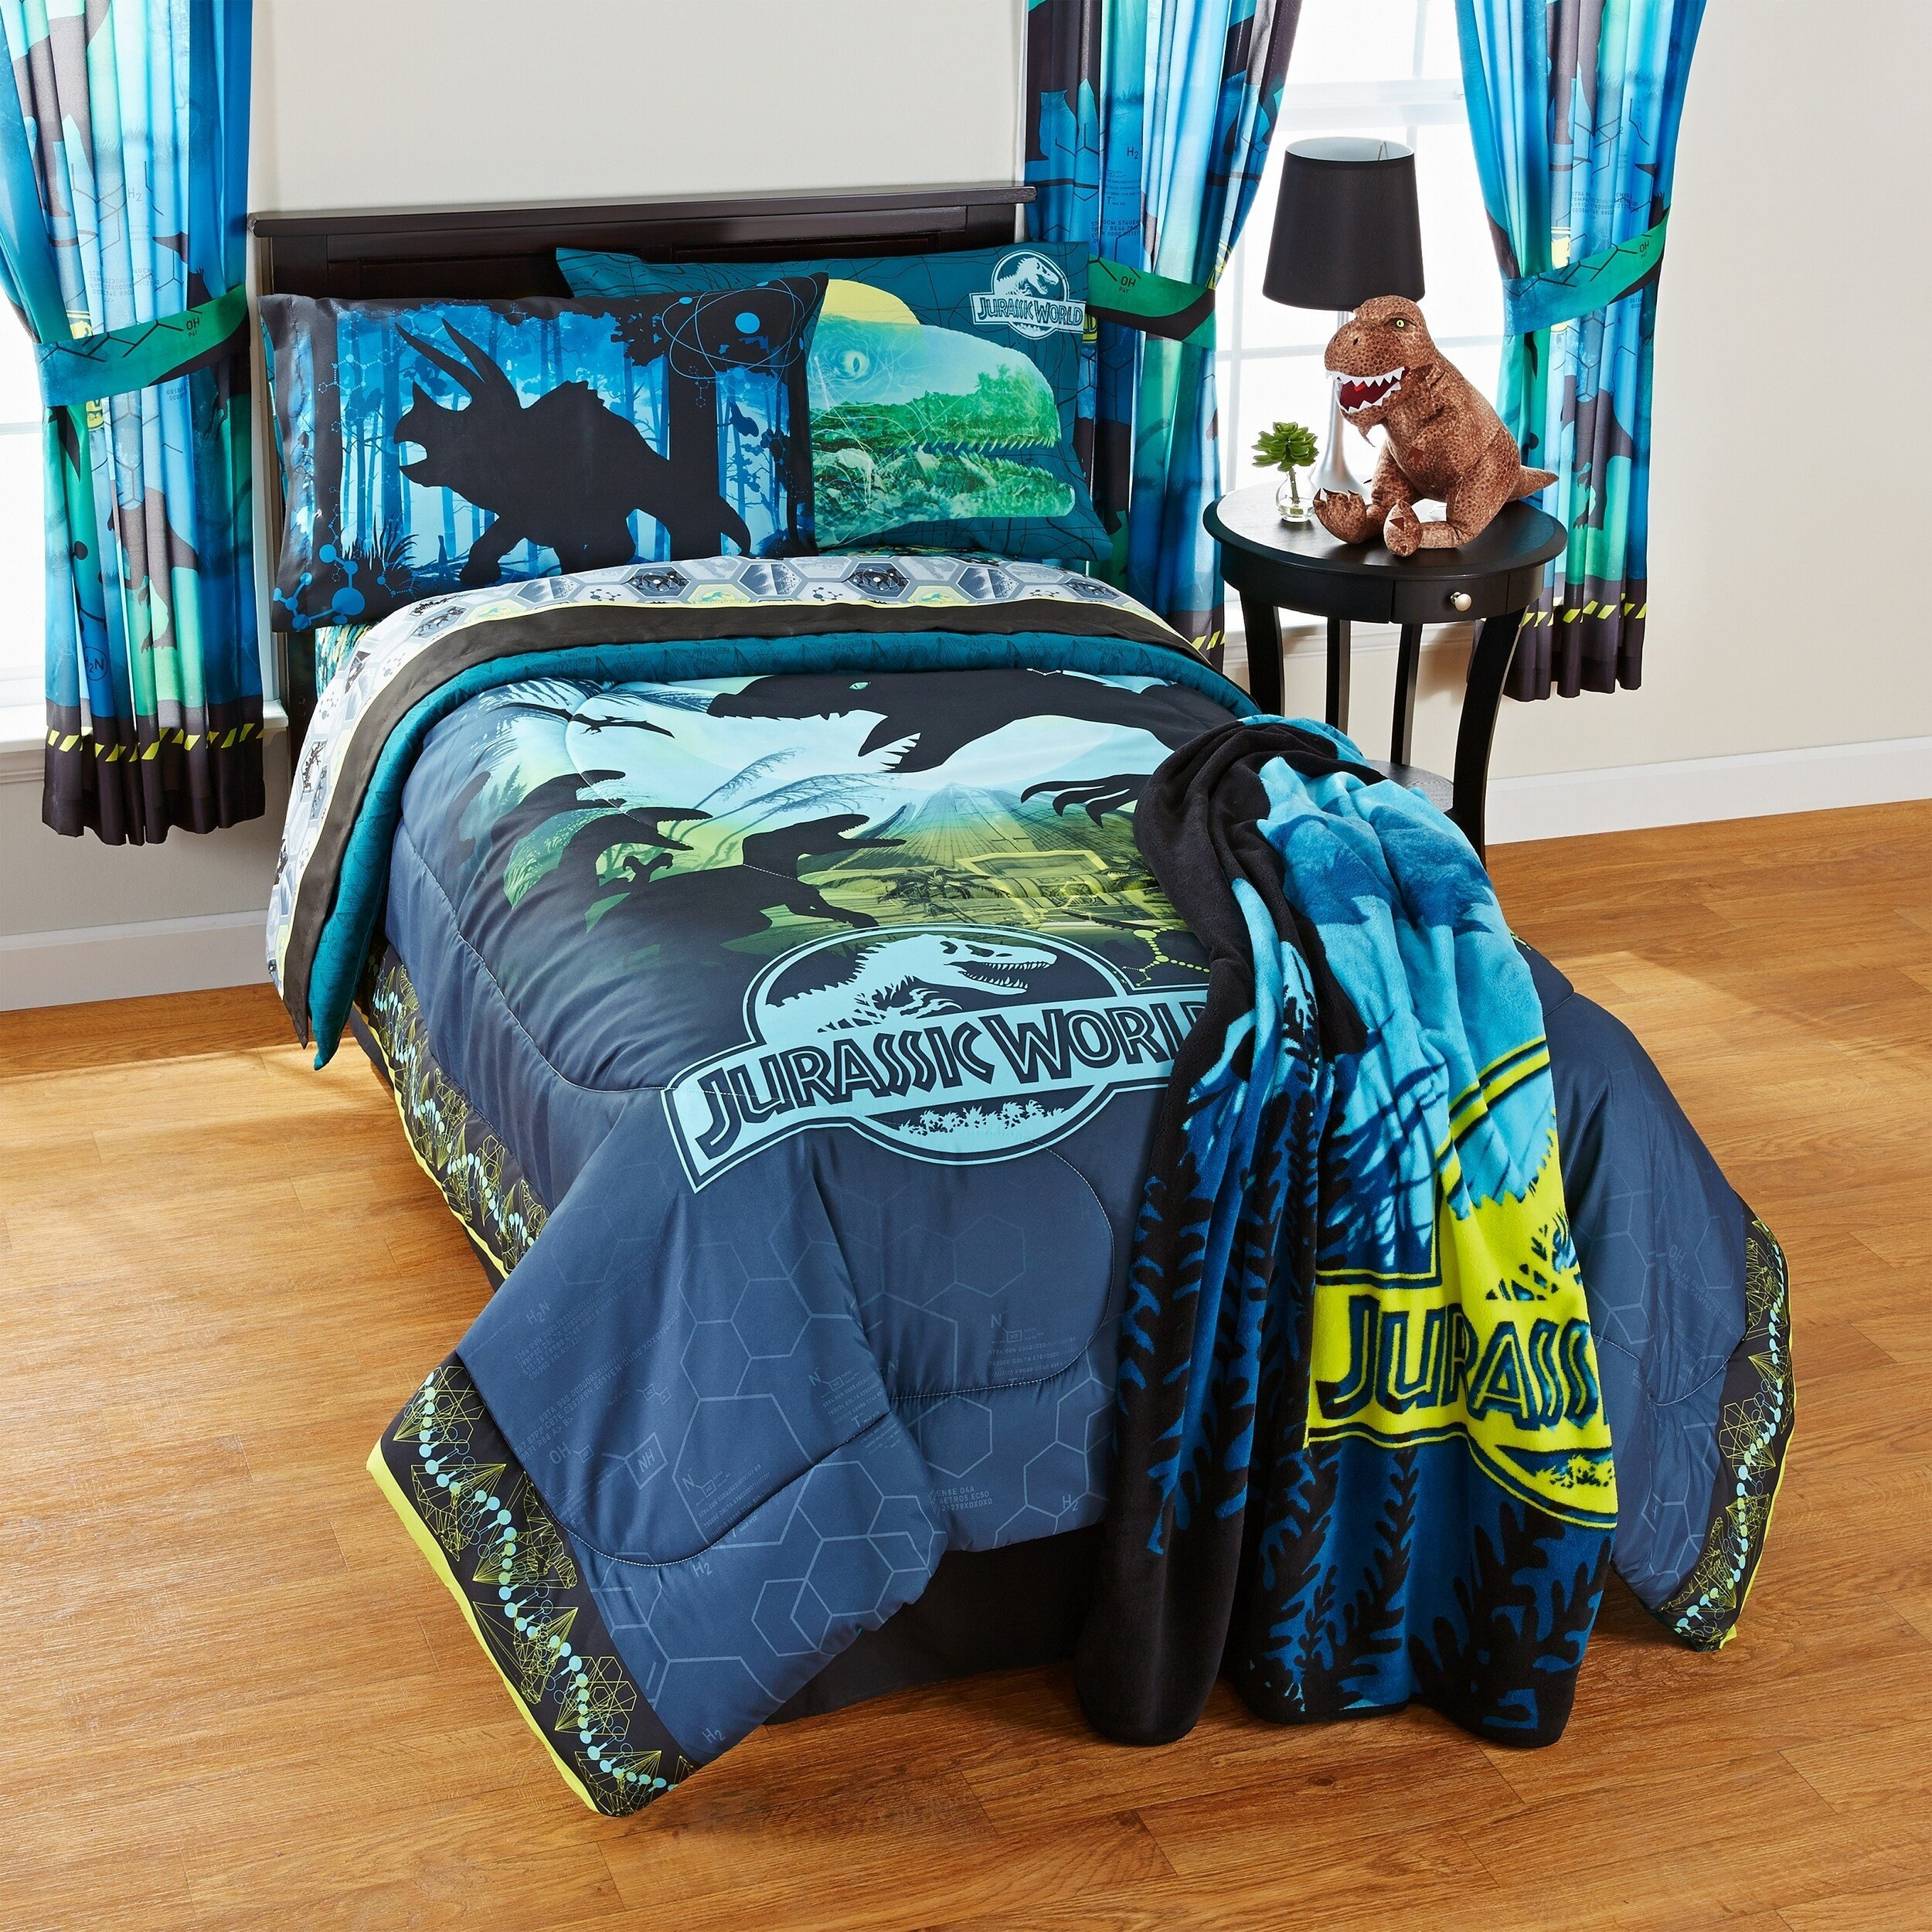 Little Mermaid Bedroom Set Unique Jurassic World Biggest Growl 5 Piece Bed In A Bag Set